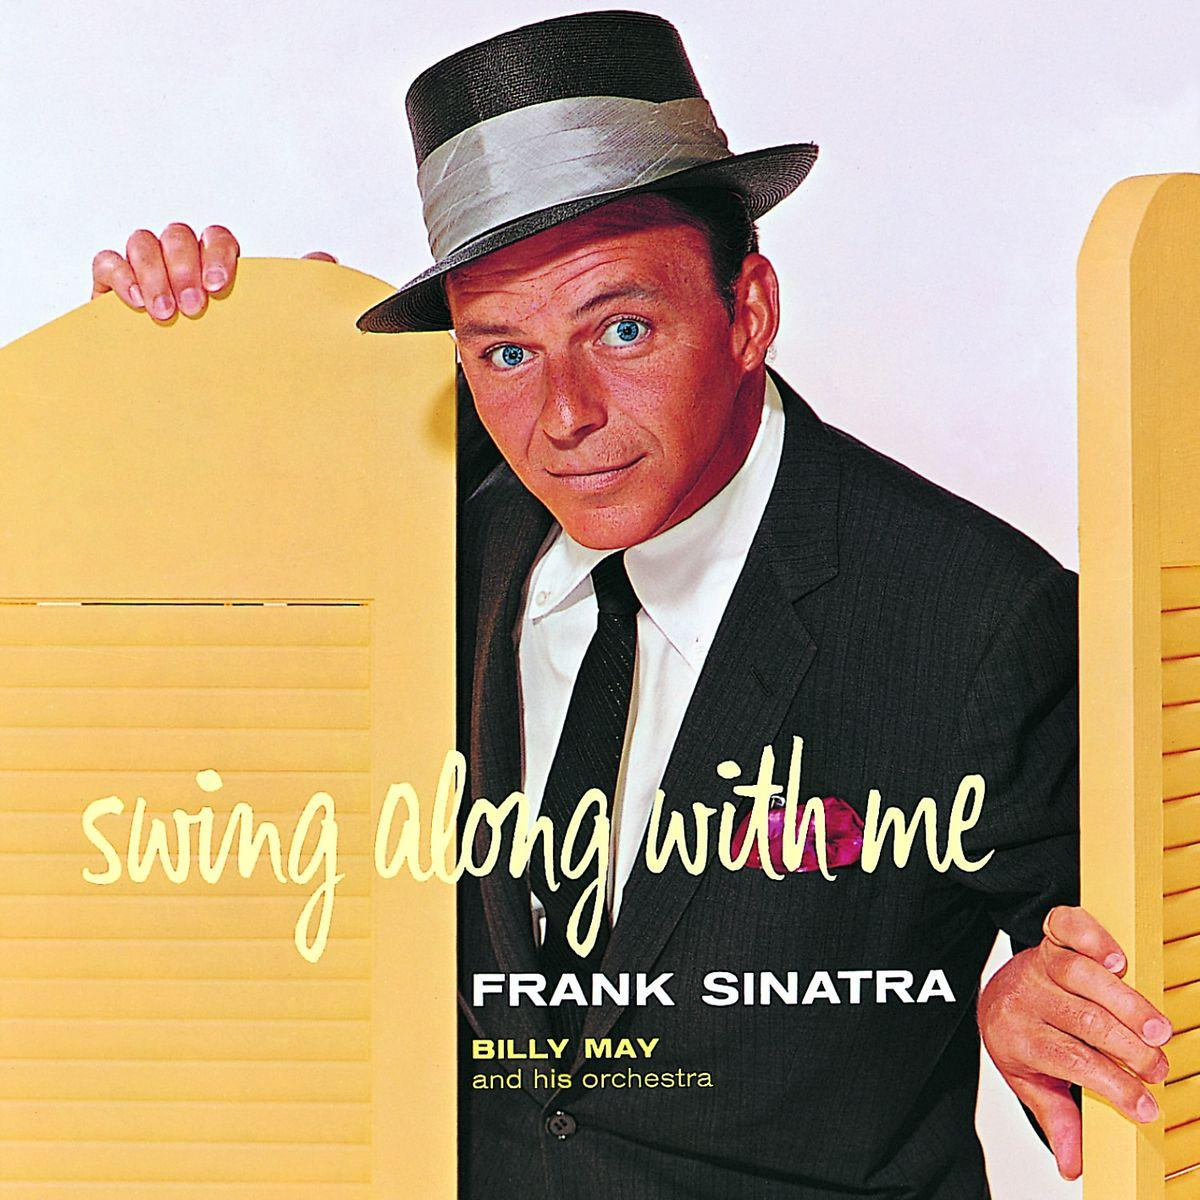 Frank-Sinatra-Swing-Along-with-Me